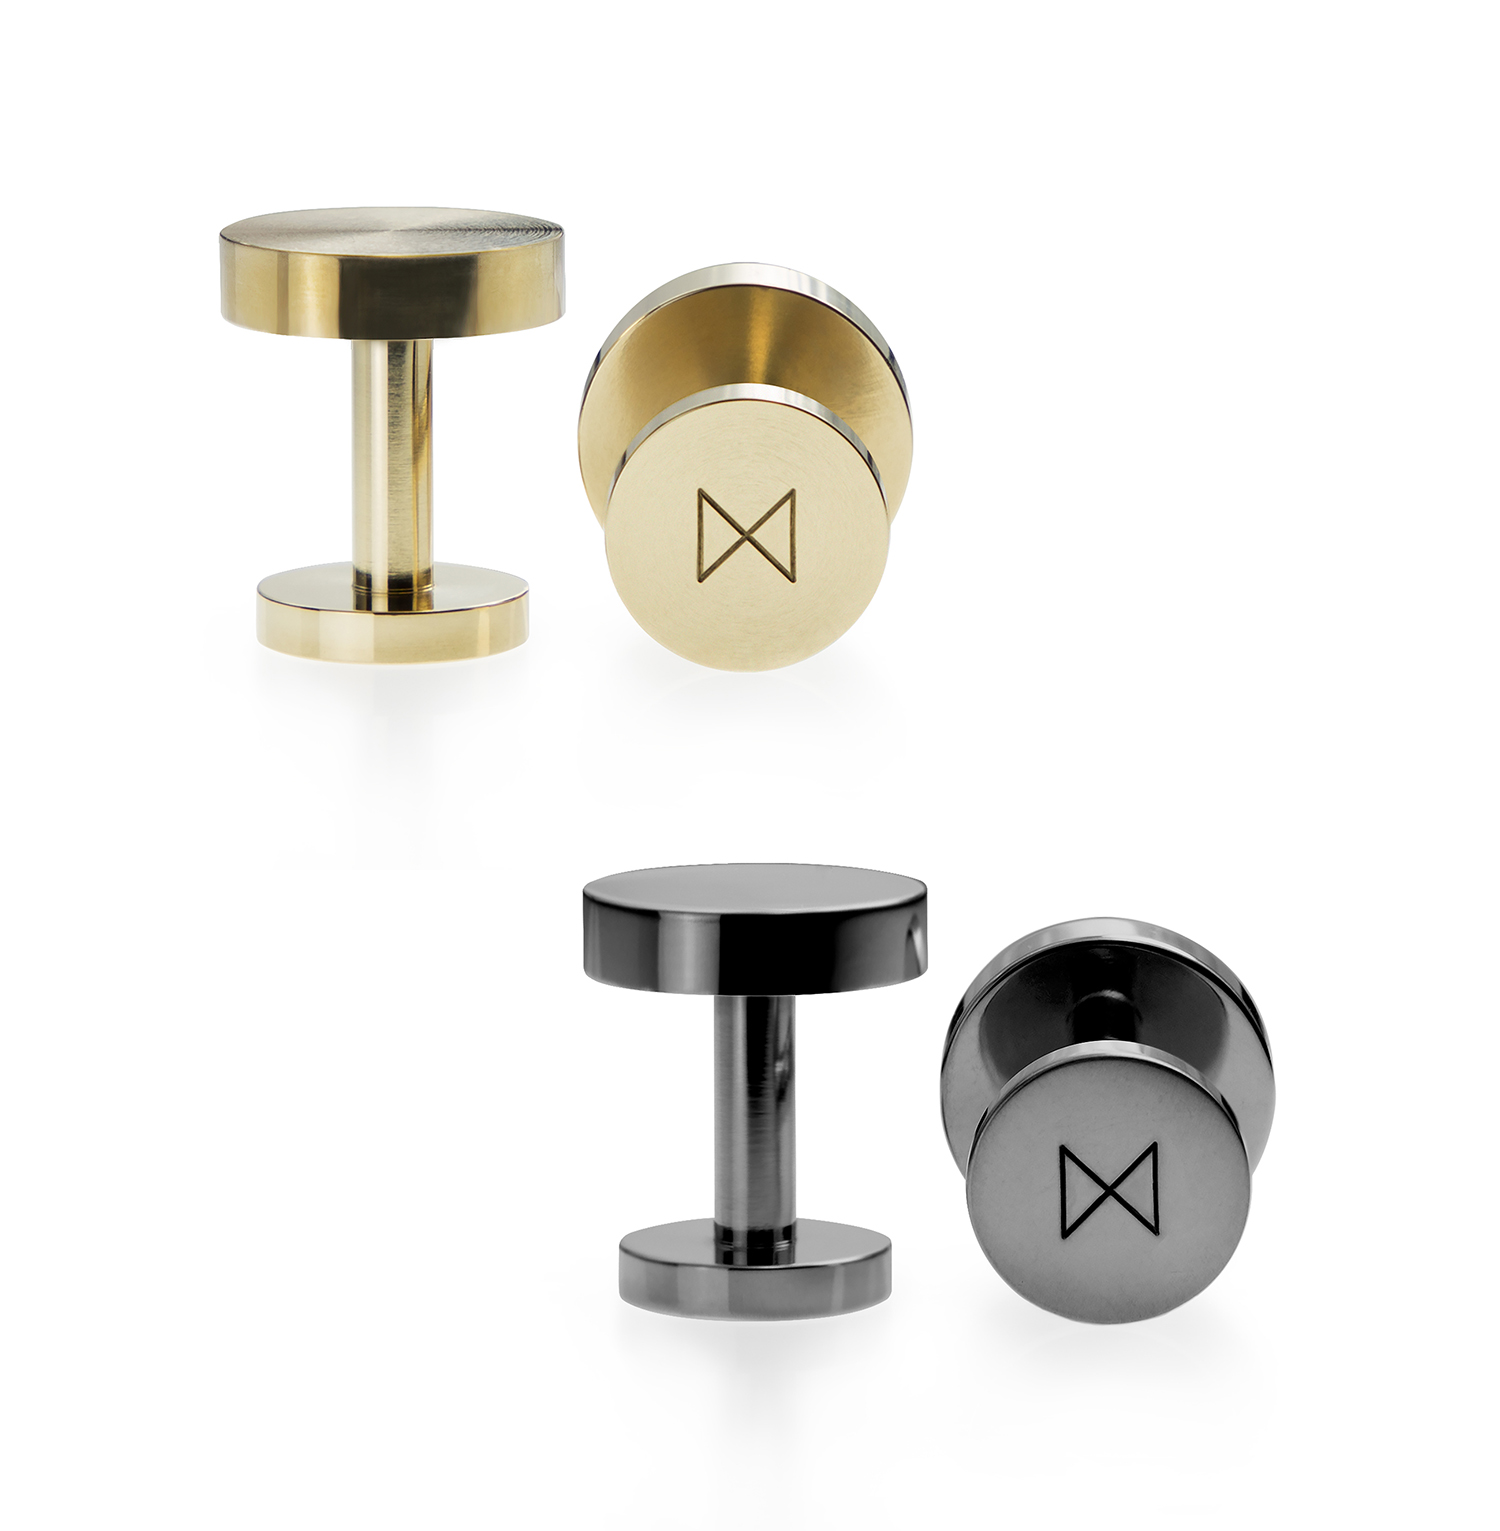 Curator: it is like a precision part of a machinery, the solid material and the precise craftsmanship exude quality. - These cufflinks are precision machined from single bars of solid brass. It is created by a London design brand to season your world with a simple, unified and long-lasting aesthetic. The essence of the design lies in its formal simplicity, premium materials and lustrous finishing.